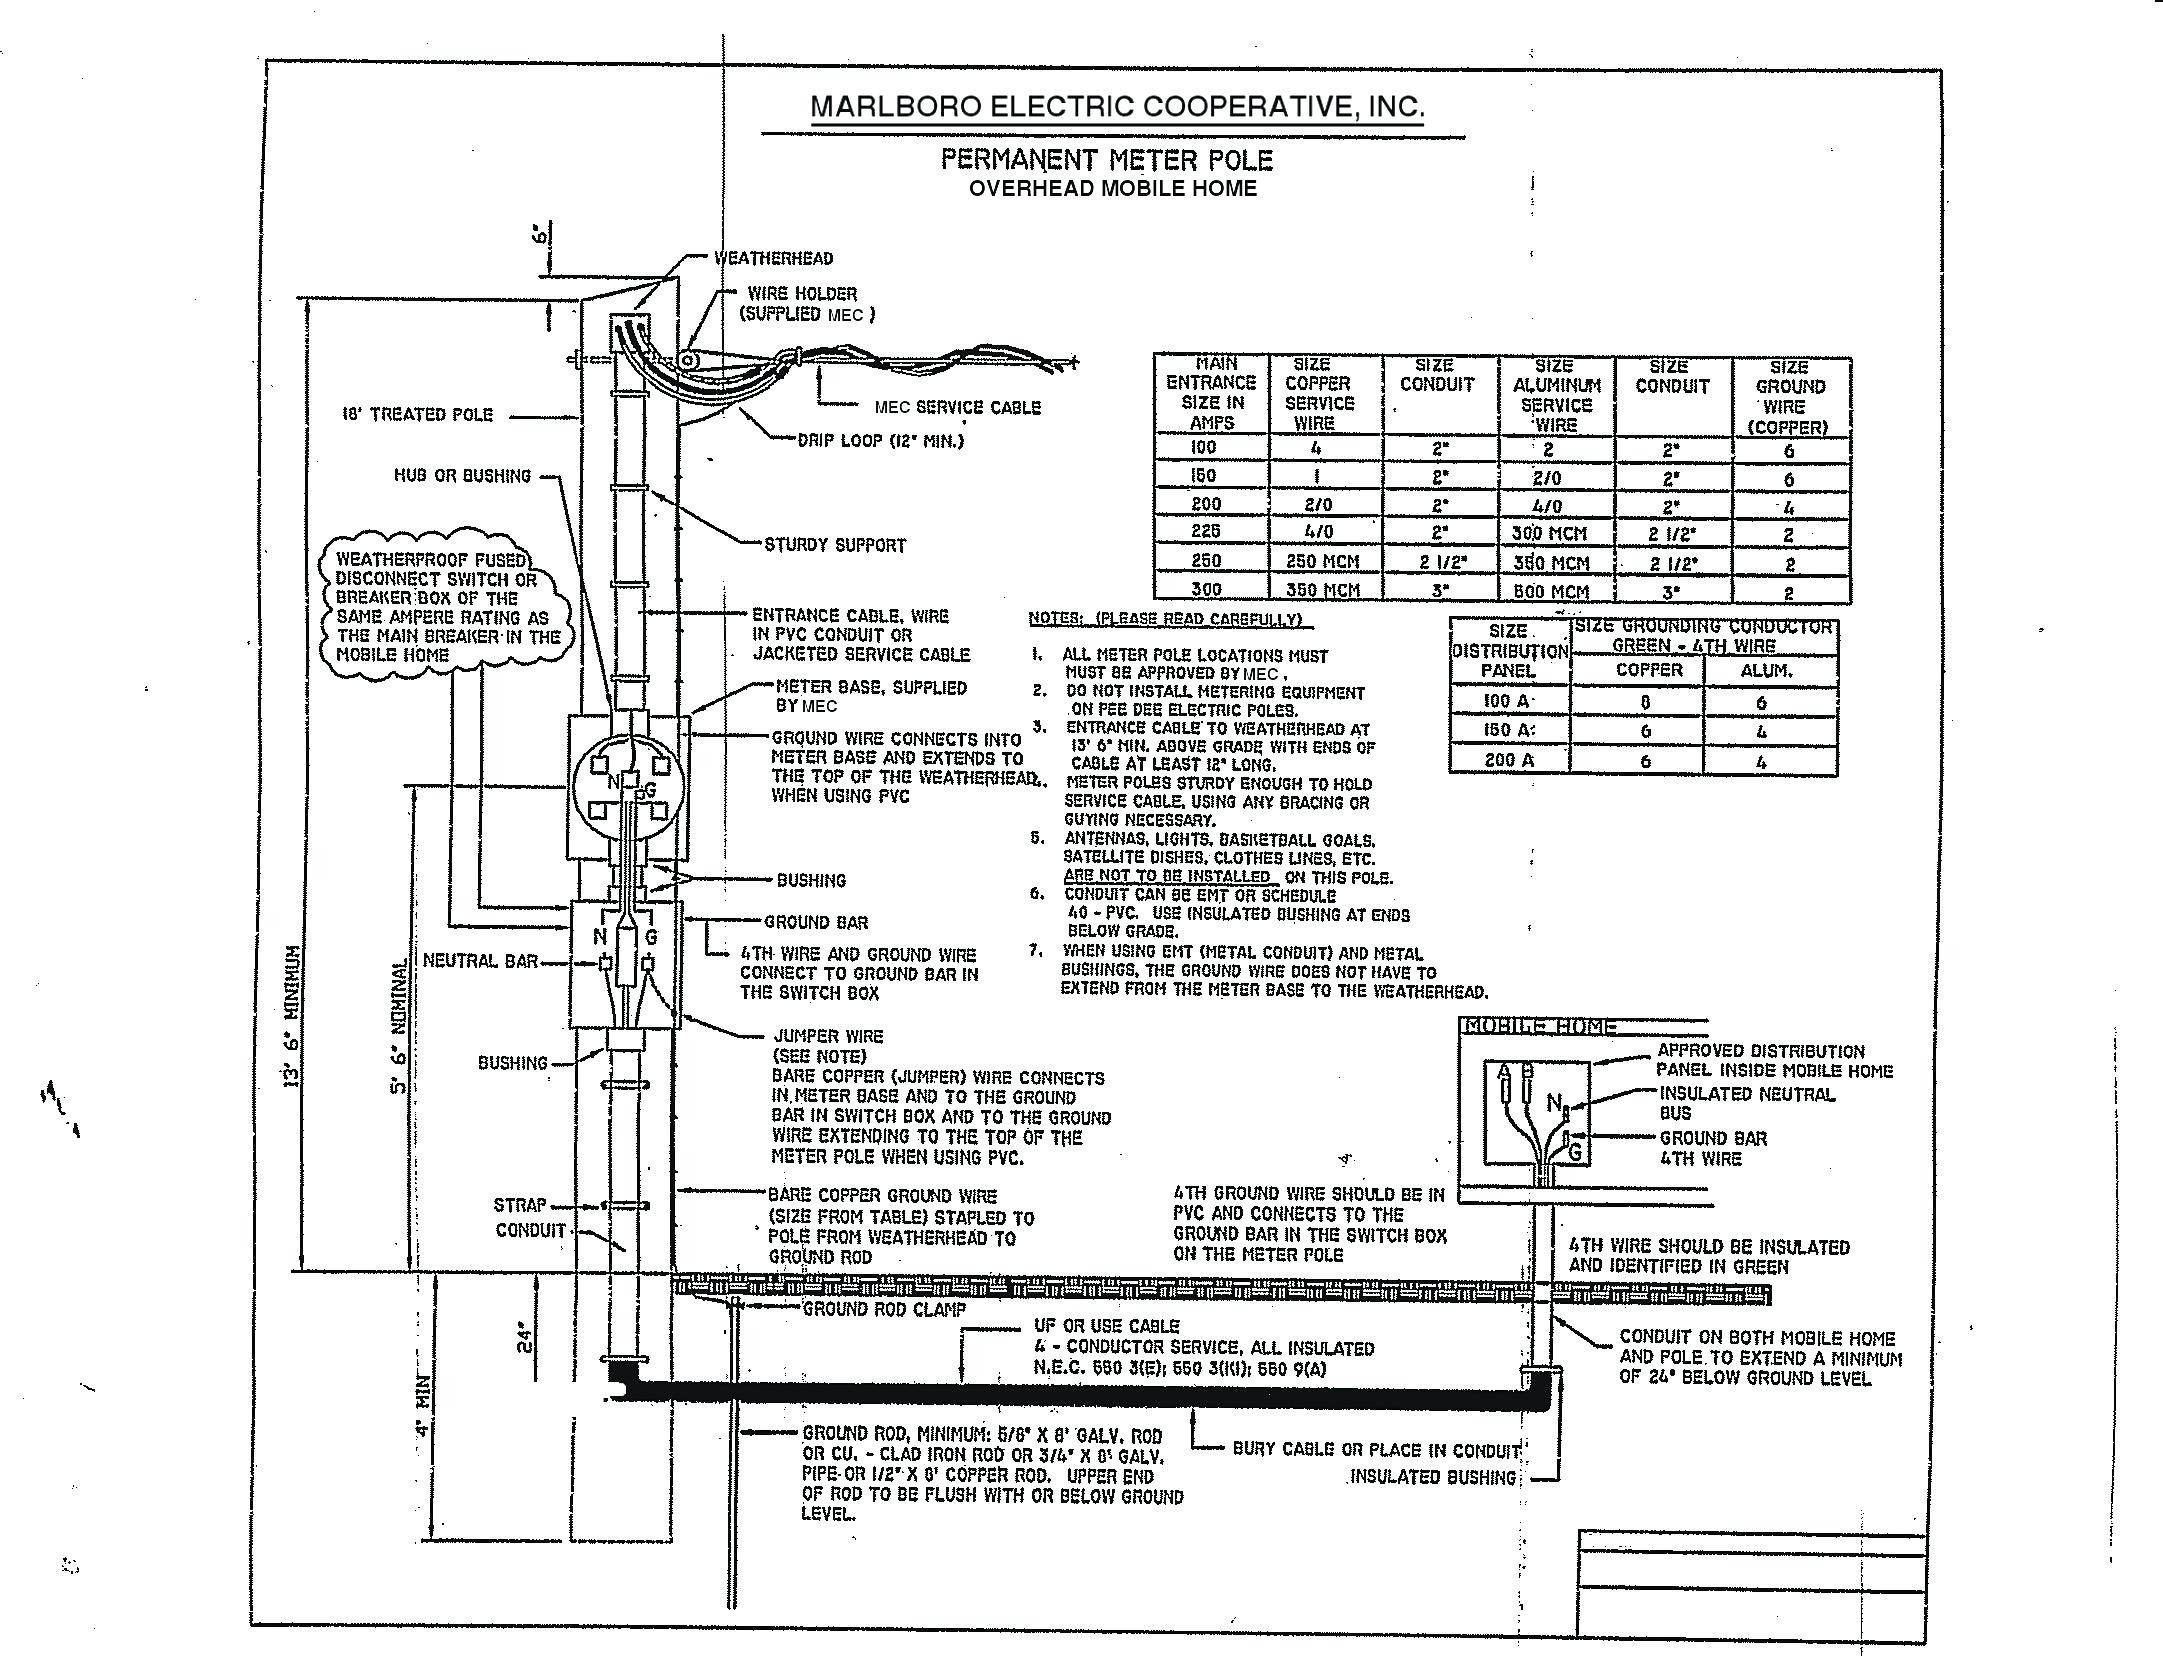 Full Size of Typical Mobile Home Wiring Diagram Electrical Furnace Homes Amazing Diagrams Have Central Electric